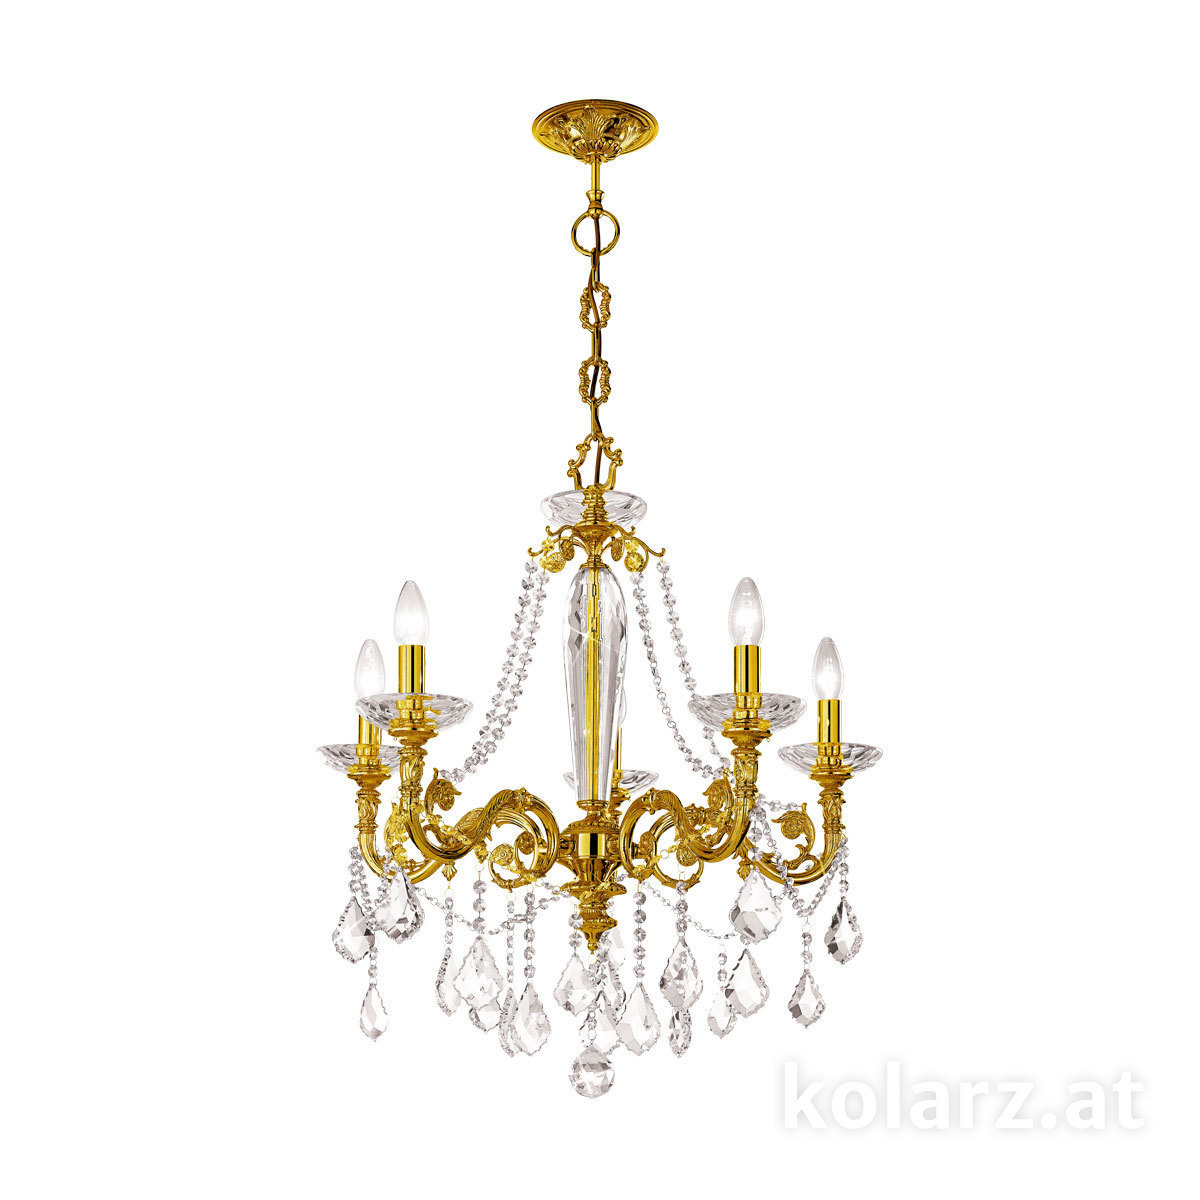 Chandelier contarini crystal french gold 65 5 lights french gold 1299 85 15 spt f1g arubaitofo Gallery